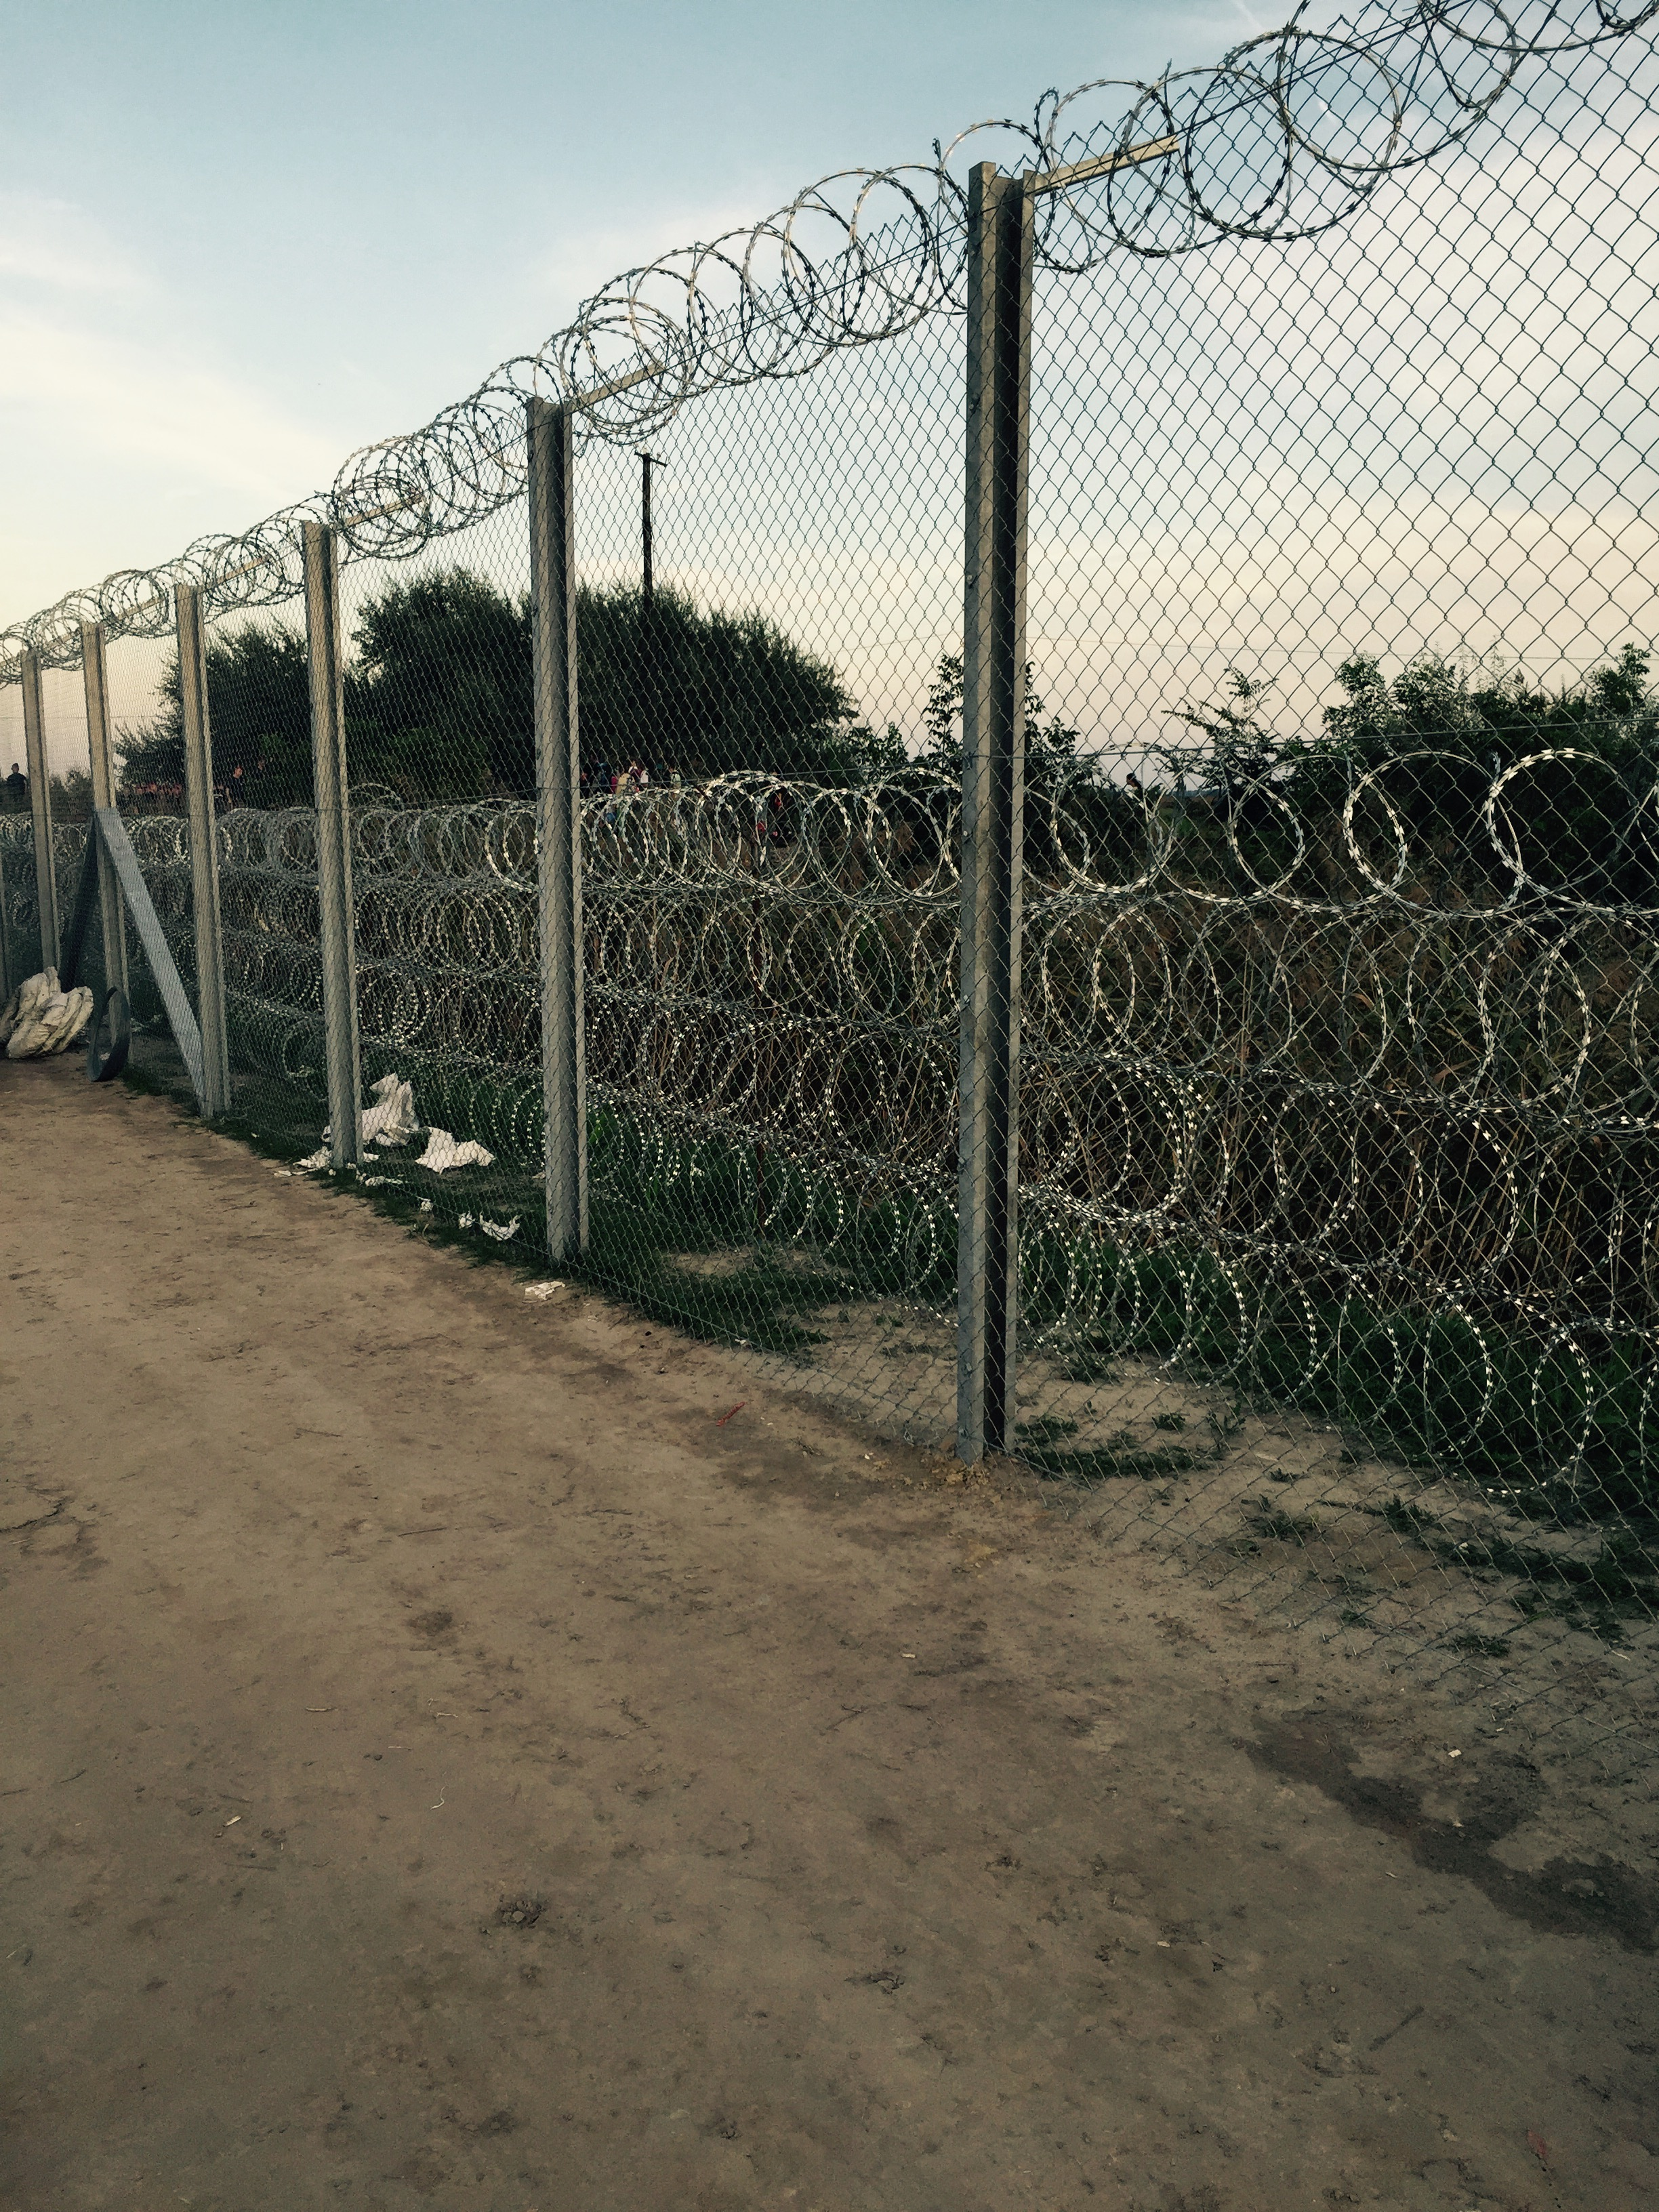 1. The Fence